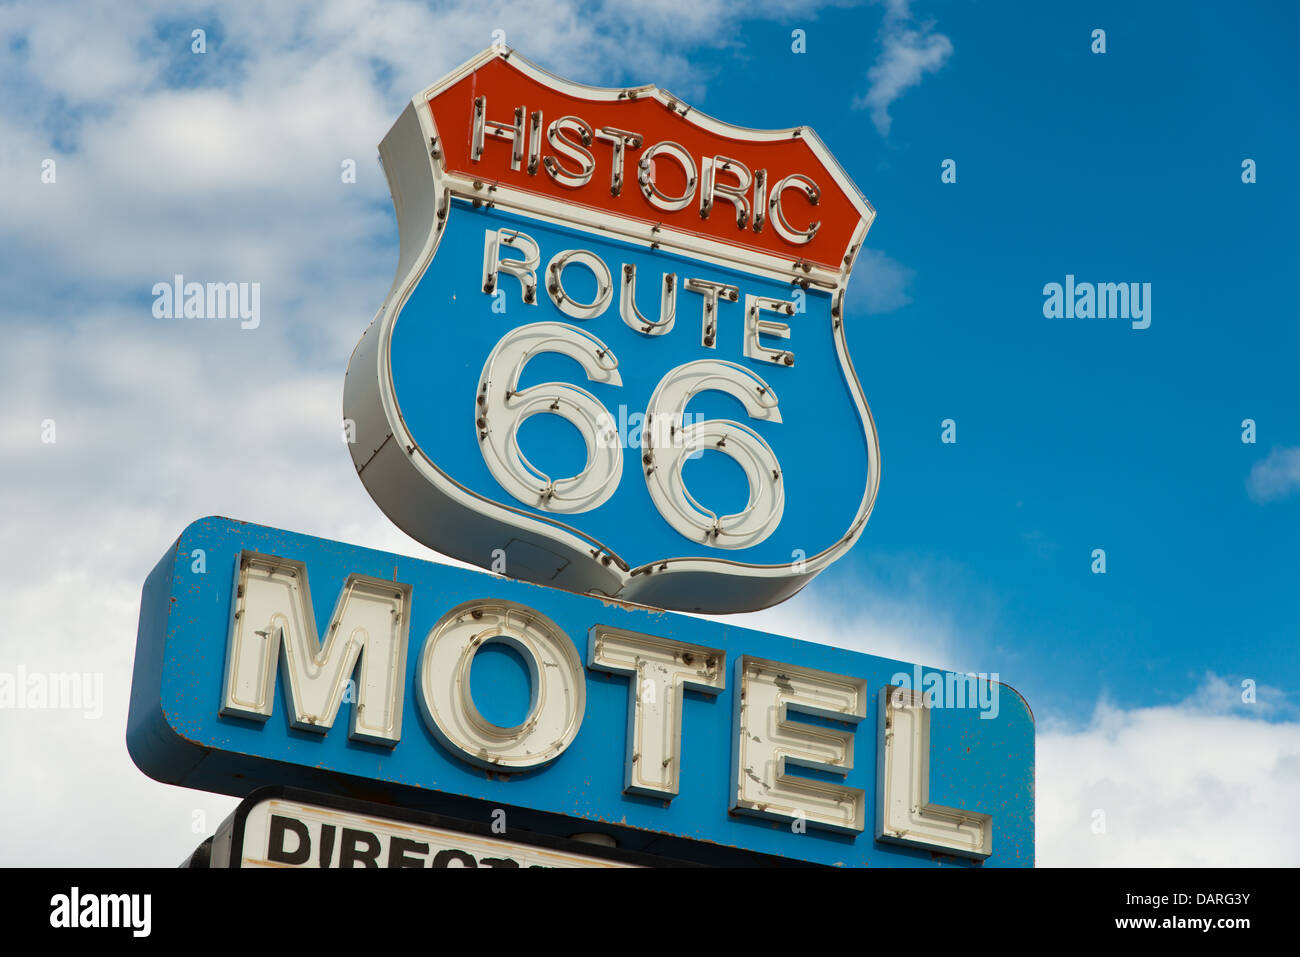 Hollywood casino route 66 classic